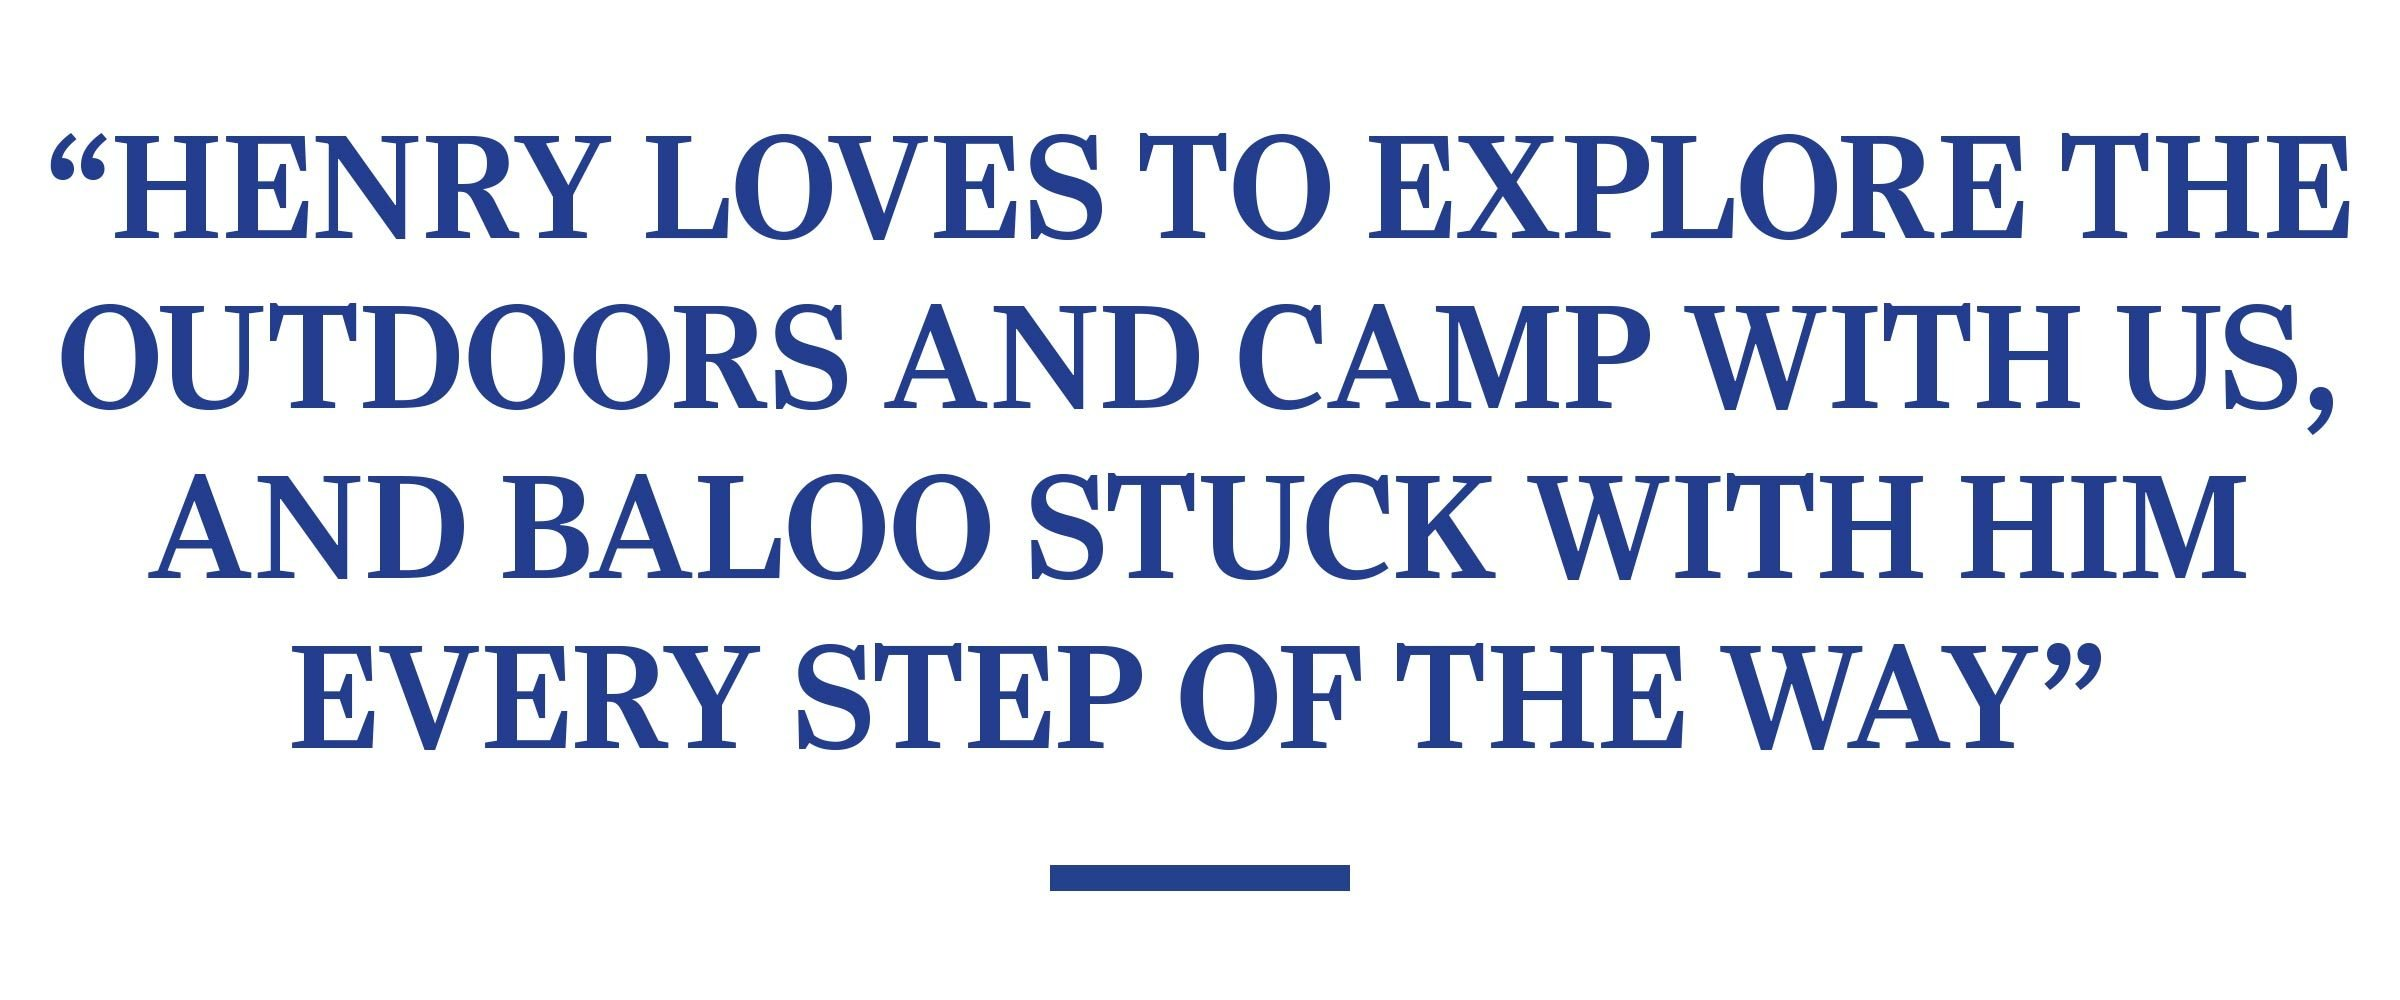 """""""HENRY LOVES TO EXPLORE THE OUTDOORS AND CAMP WITH US, AND BALOO STUCK WITH HIM EVERY STEP OF THE WAY."""""""